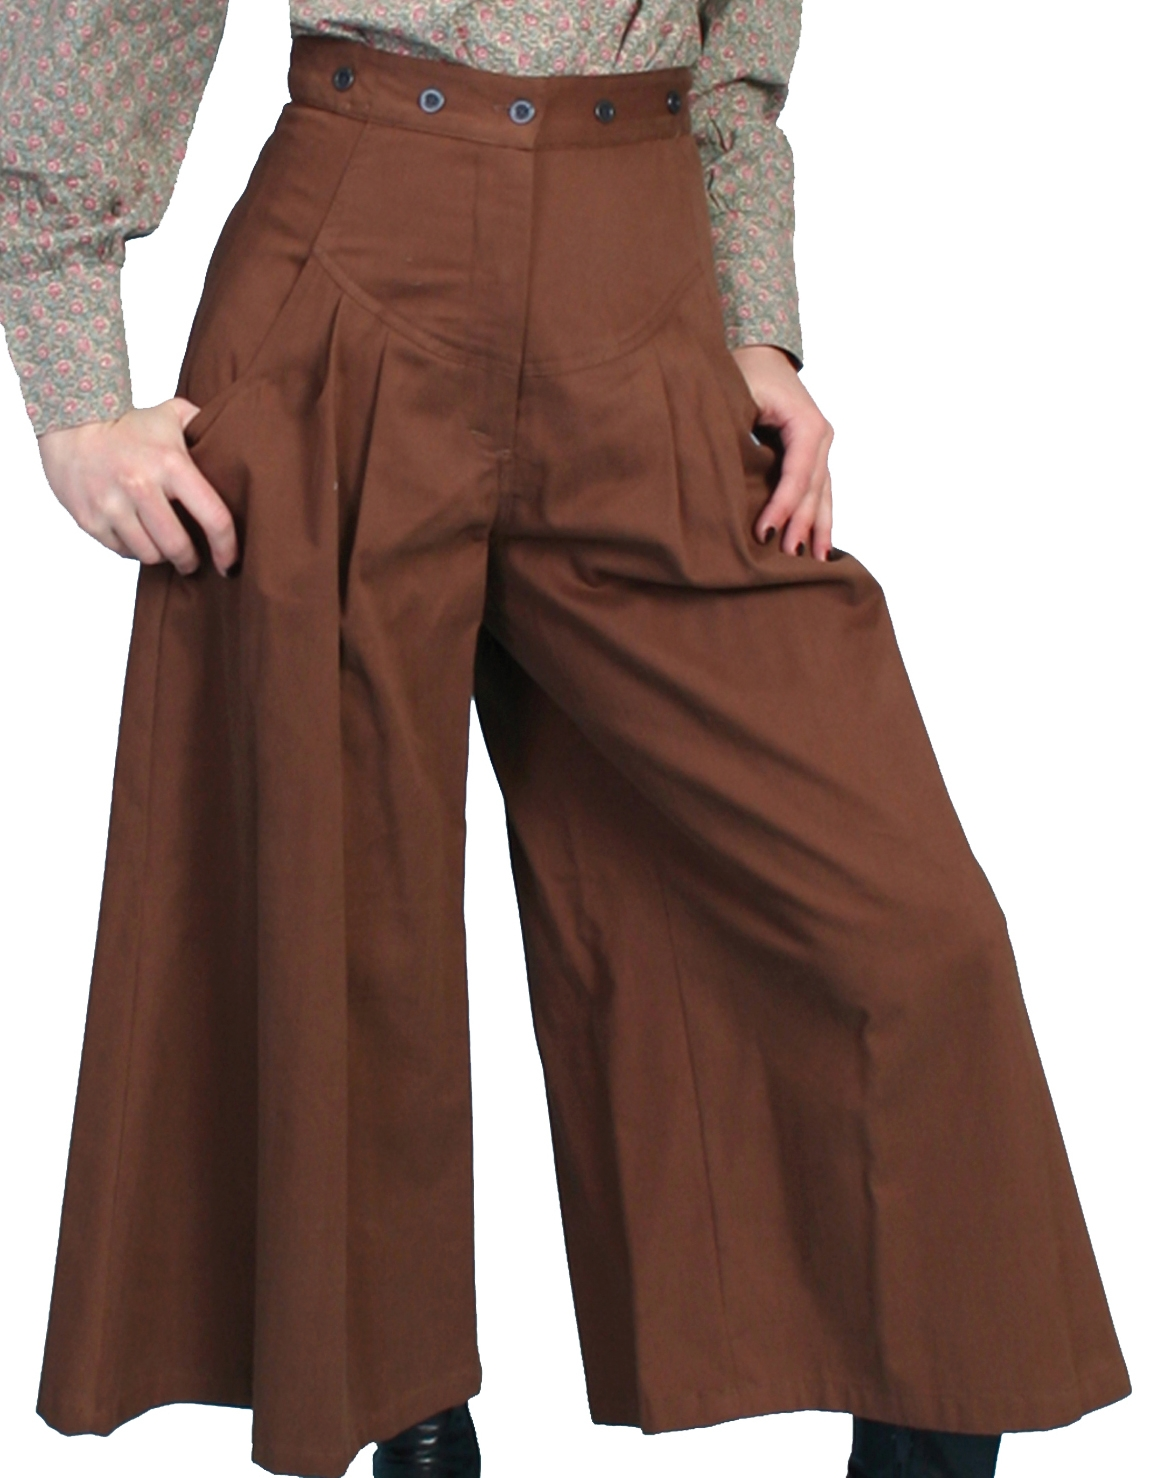 Awesome SURFSTITCH WOMENS PANTS - CARGO | Some Sort Of Style | Pinterest | Summer Metal Buttons And Belt